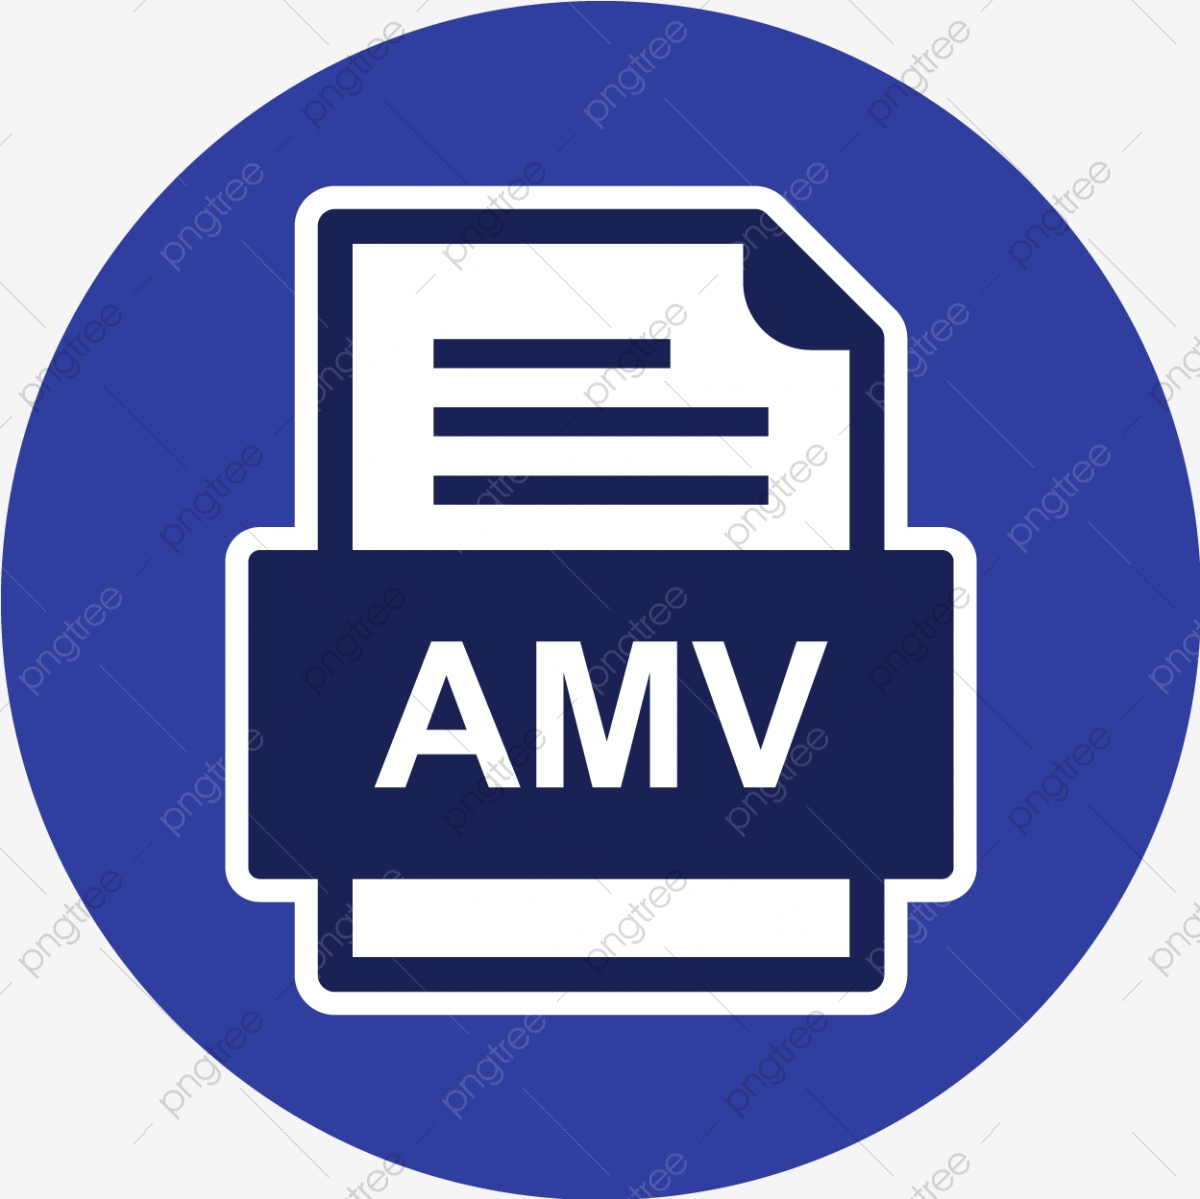 Amv File Document Icon Amv Document File PNG and Vector with 1200x1199